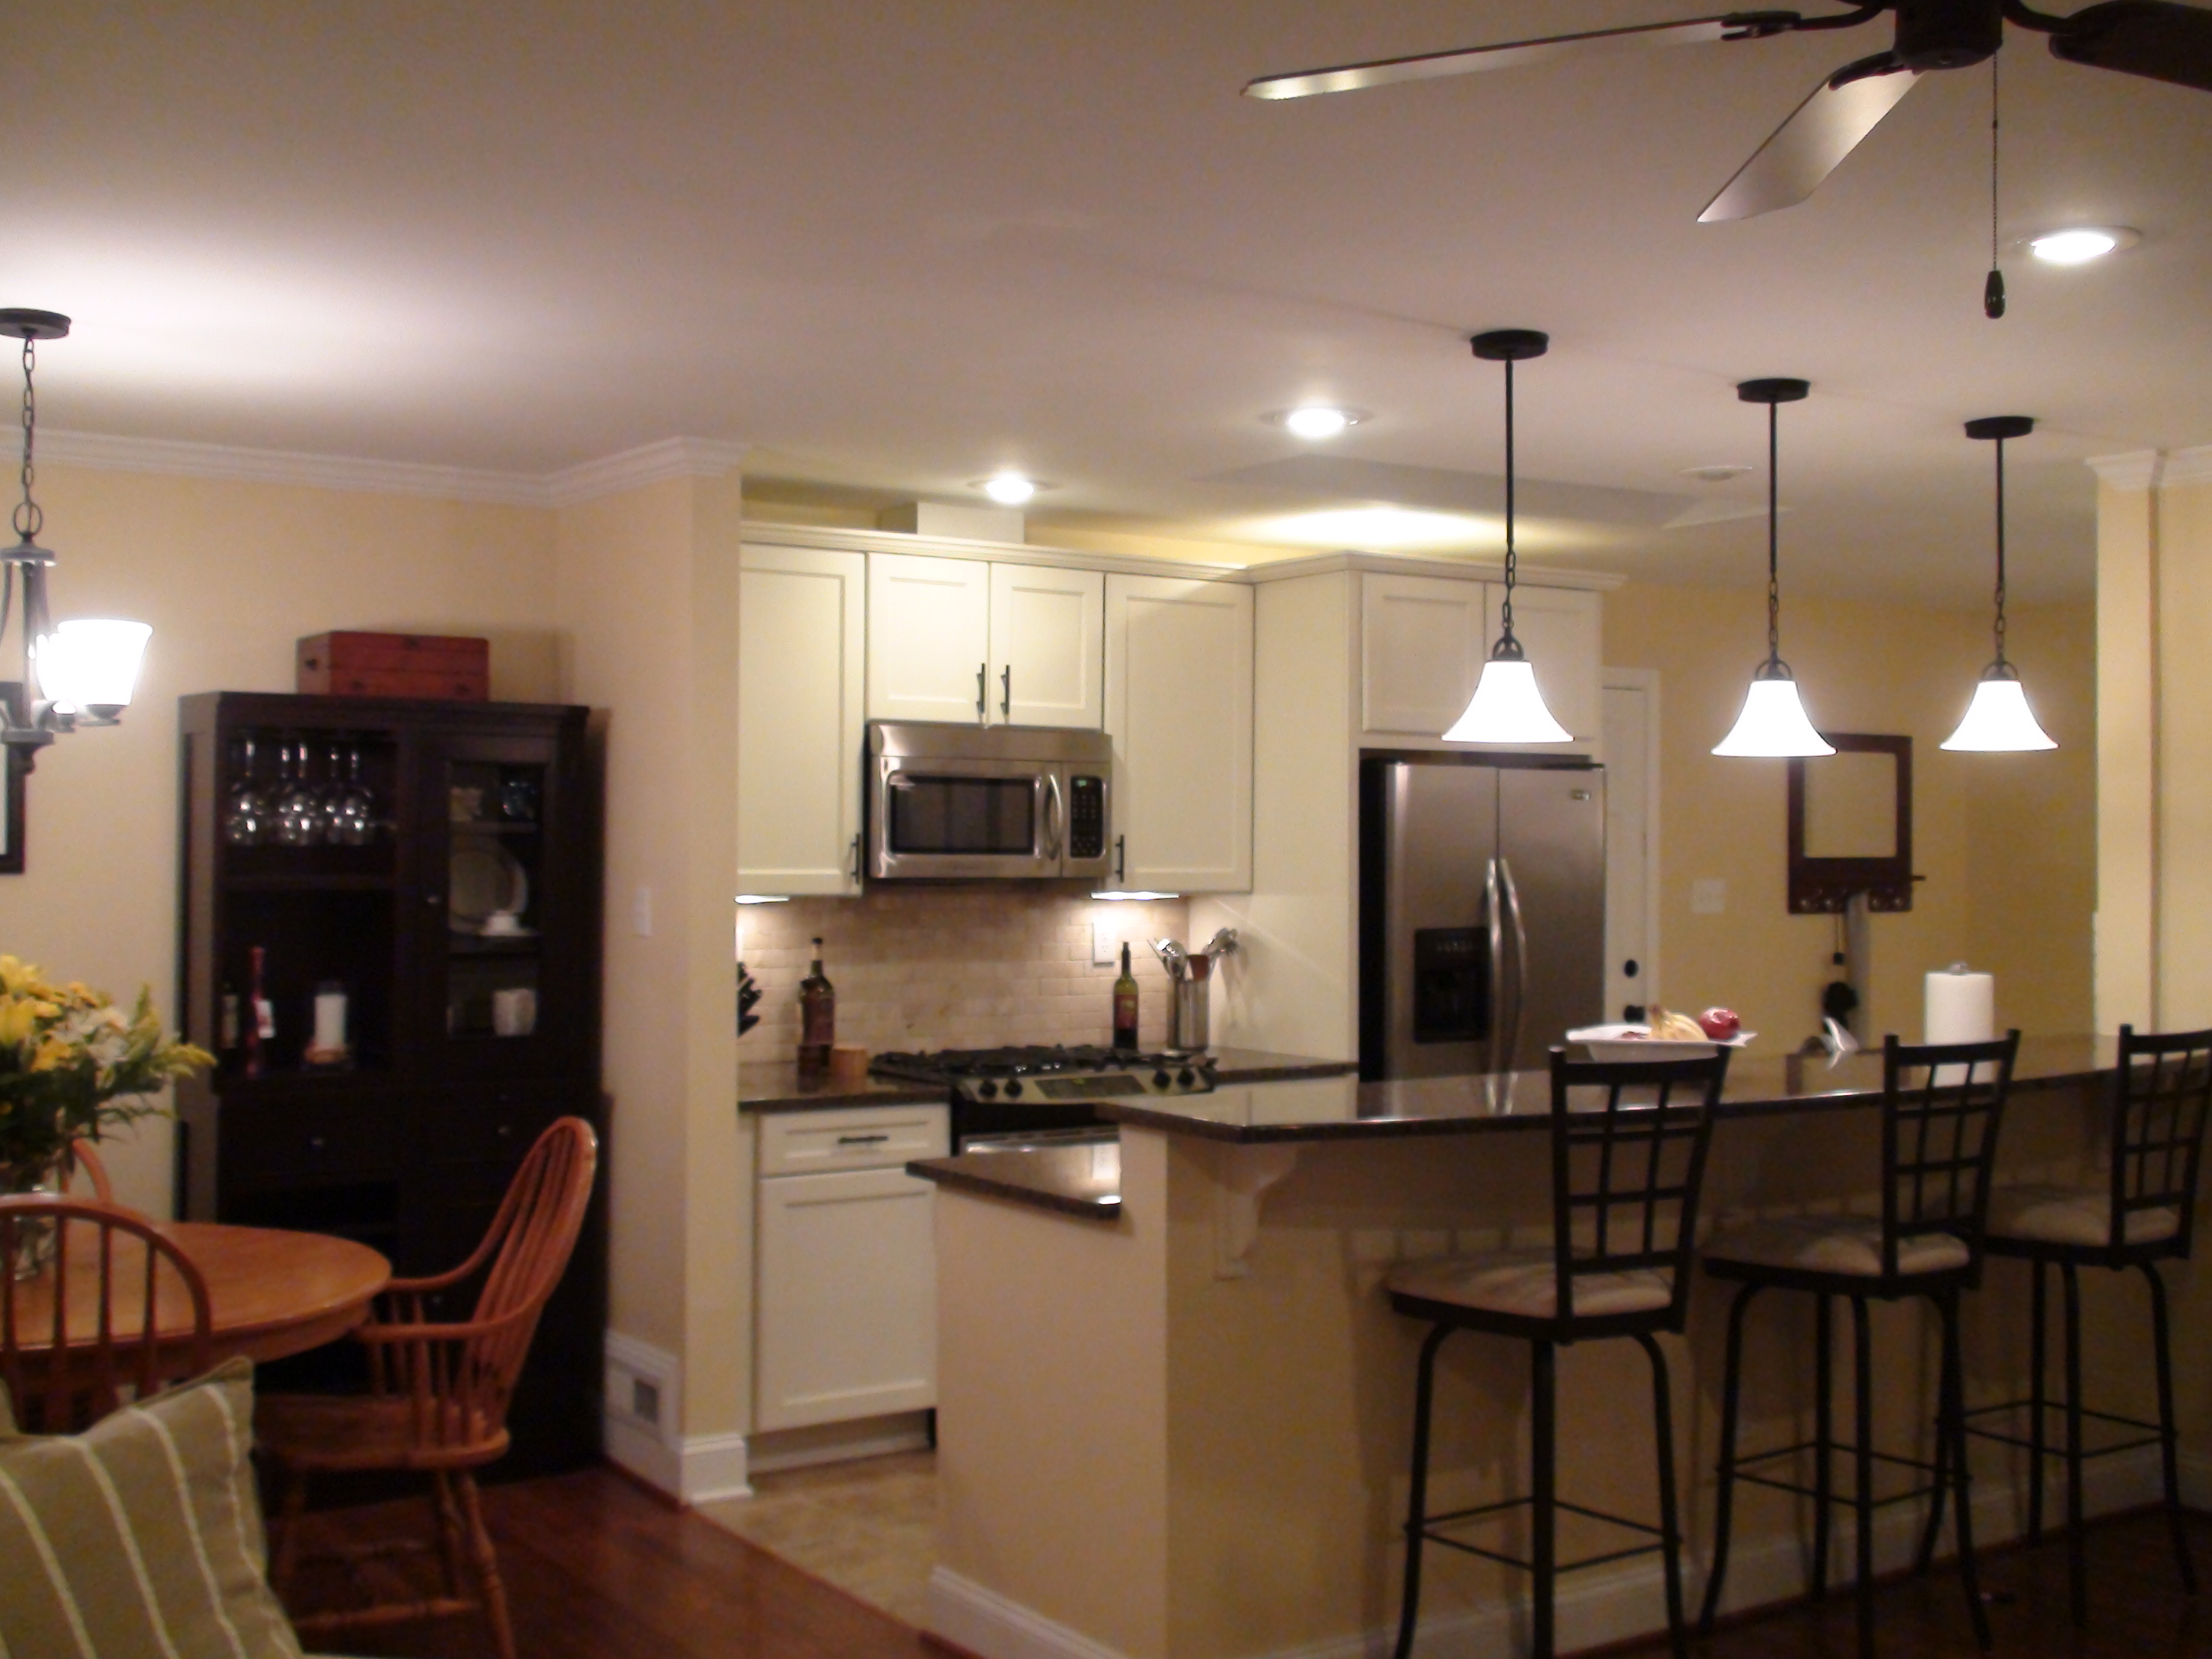 The Kitchen Remodel One Home Made